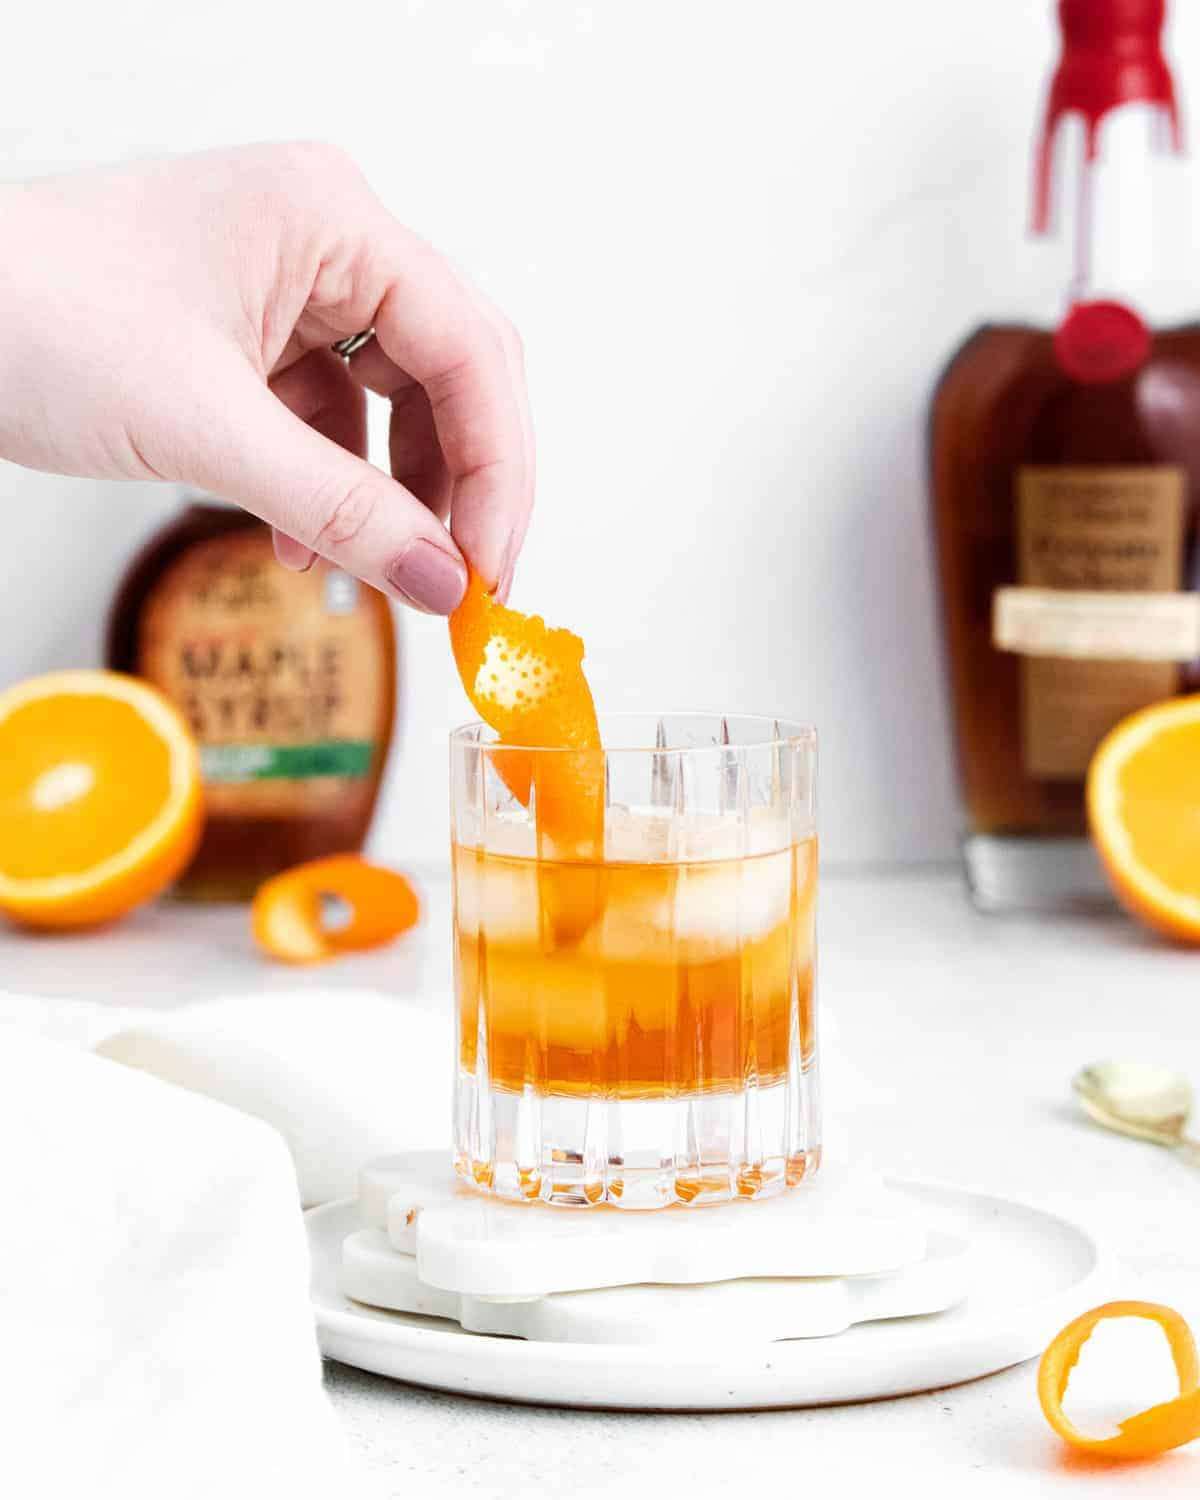 Orange peel being added to an old fashioned cocktail.